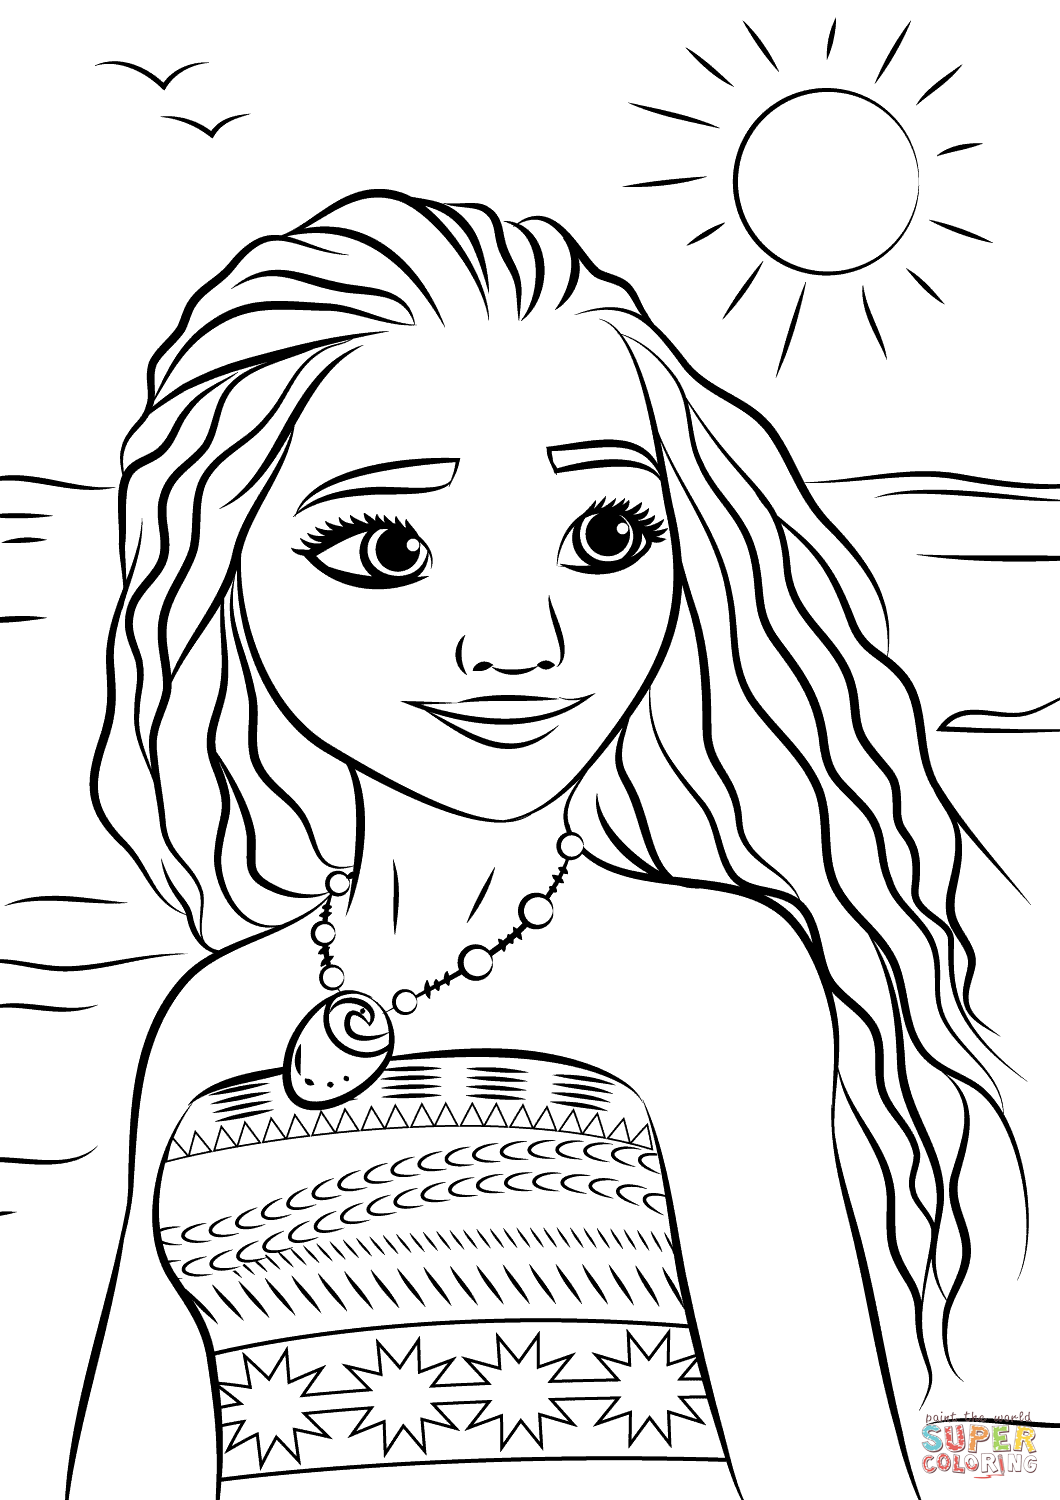 1060x1500 Princess Moana Portrait Coloring Page Free Printable Coloring